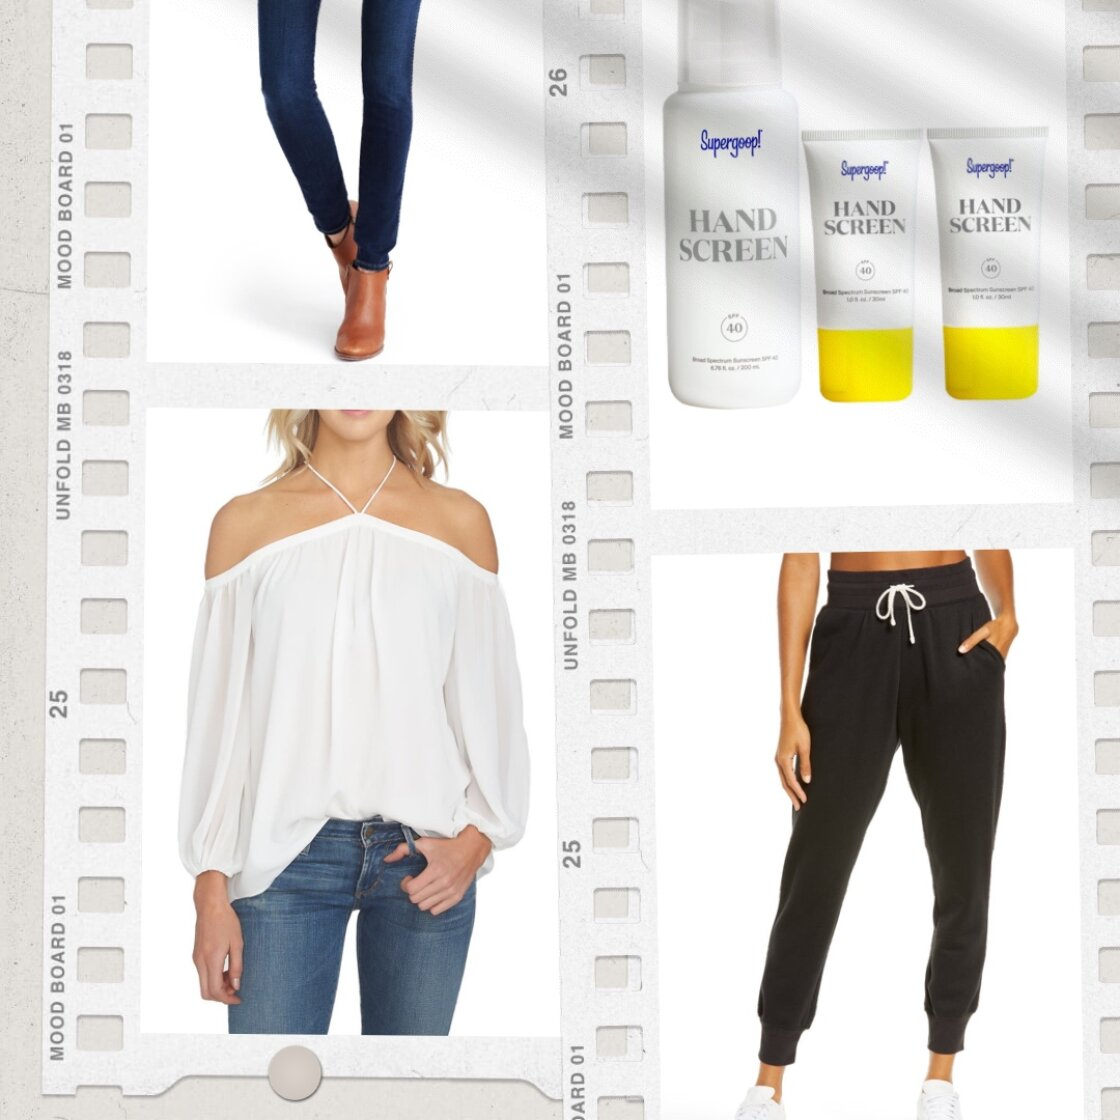 21 Items On Sale From Nordstrom You Don't Want To Miss Out On